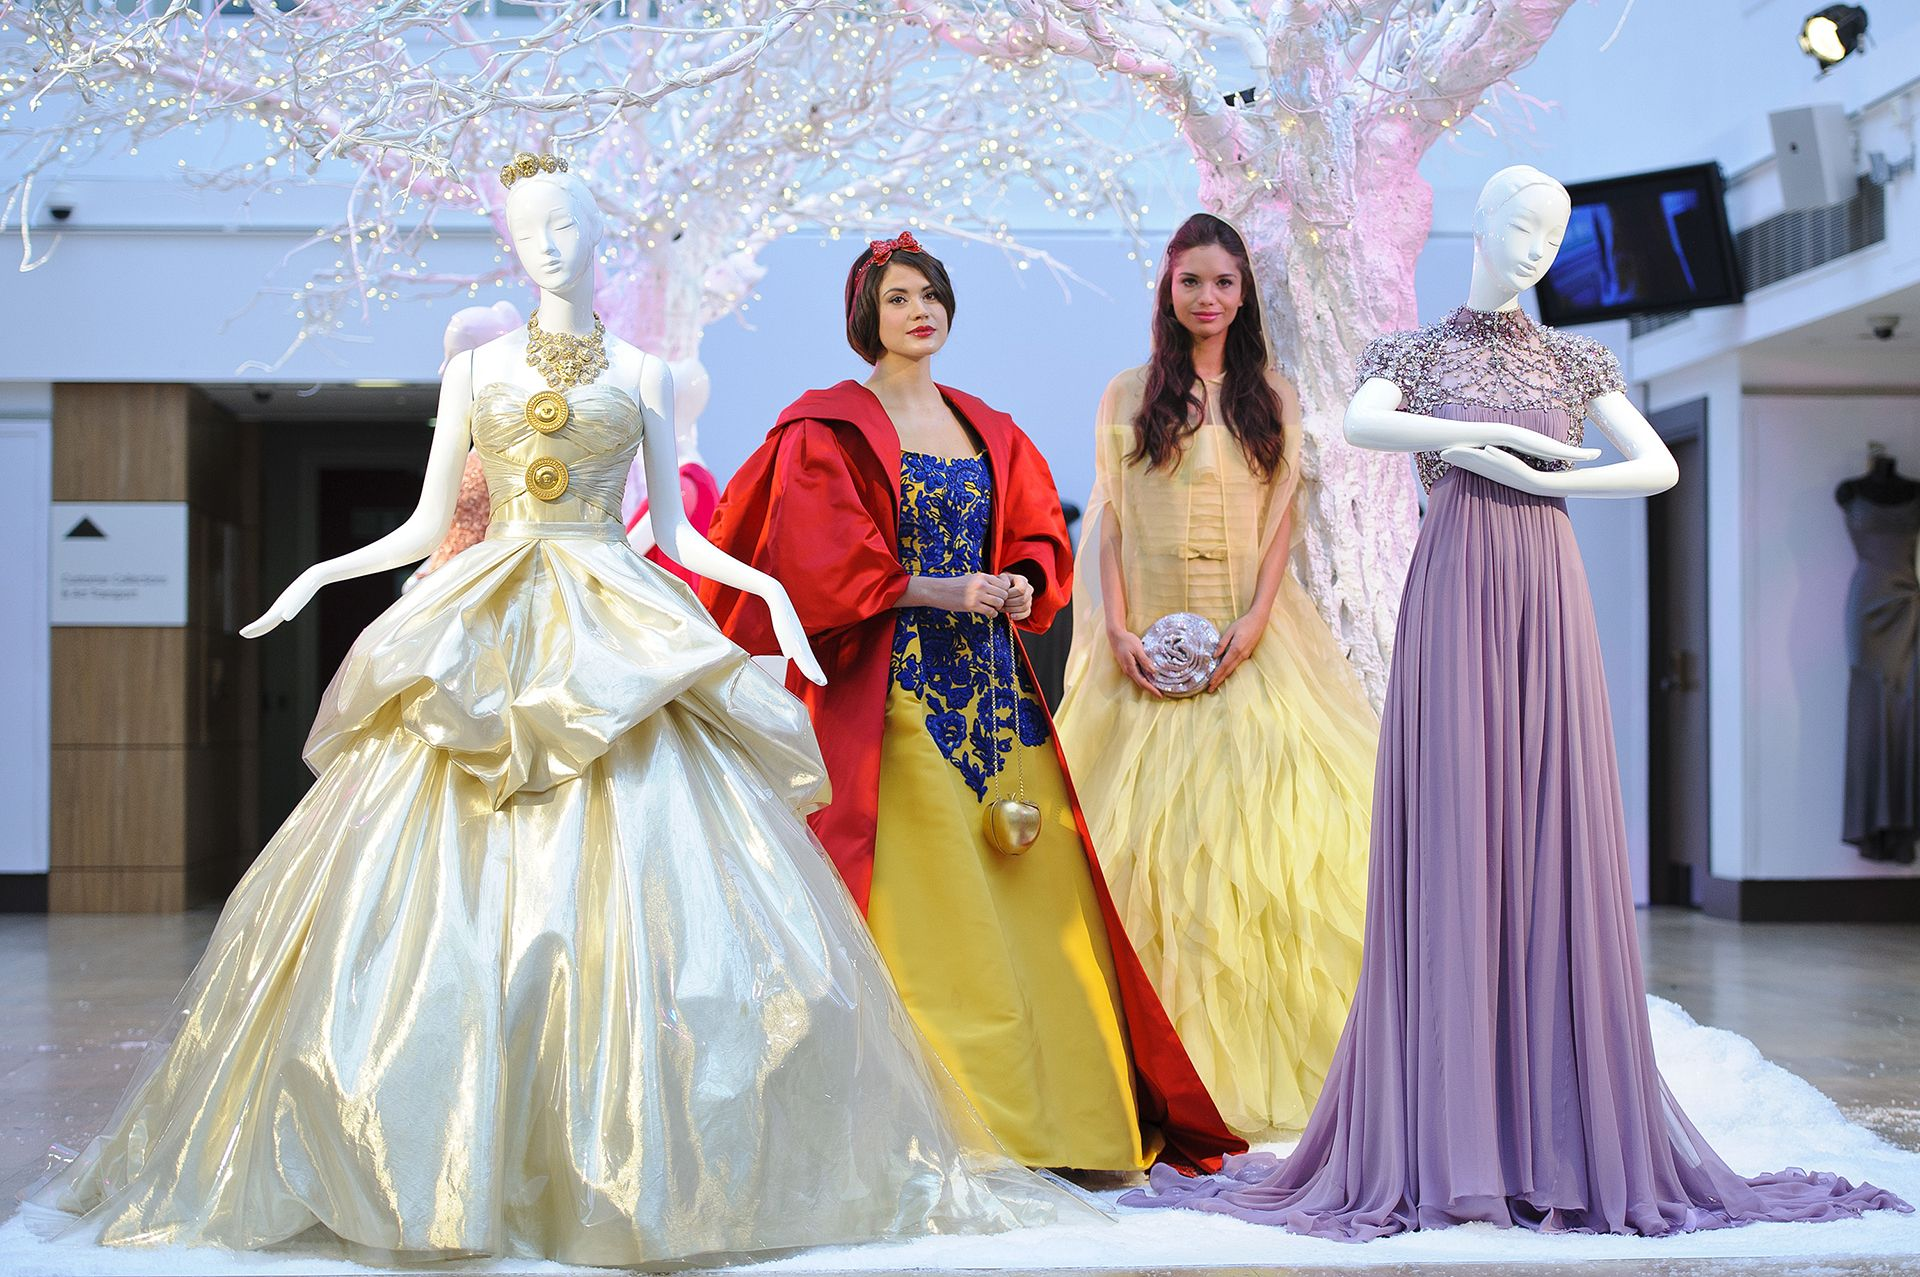 Disney Princess couture gowns - Disney Princess couture dresses